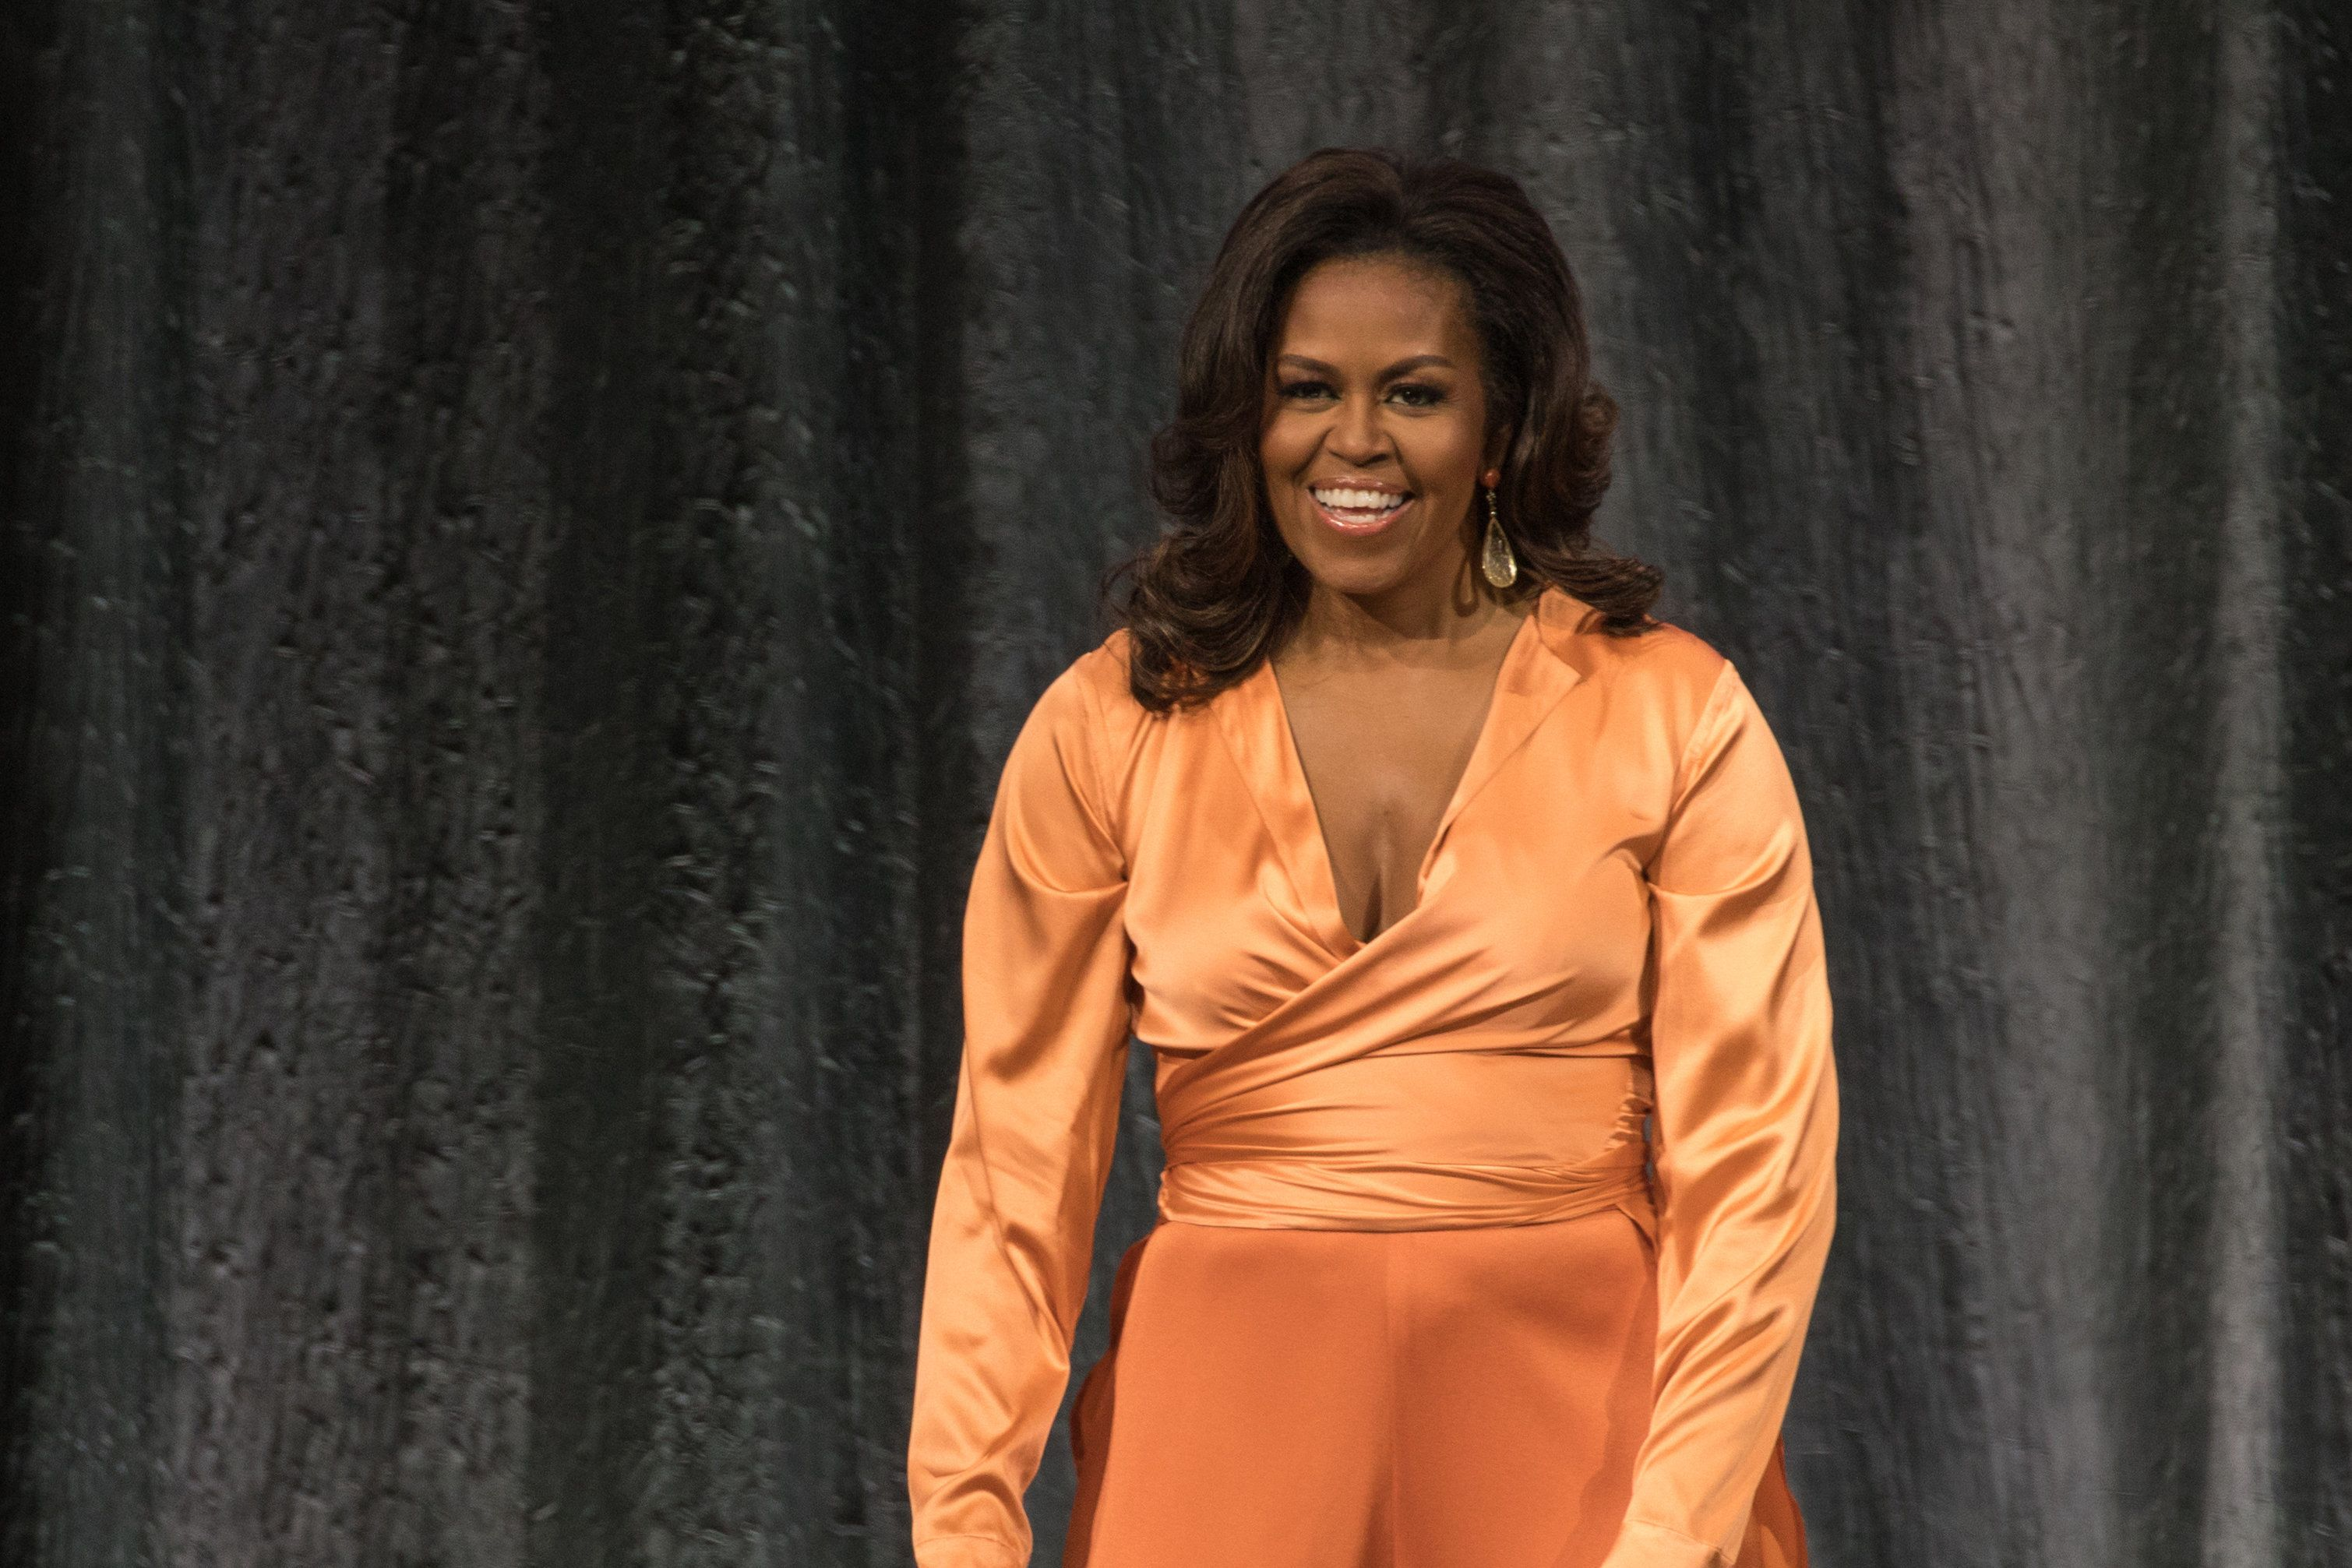 AUSTIN, TEXAS - FEBRUARY 28: Former First Lady Michelle Obama attends 'Becoming: An Intimate Conversation with Michelle Obama' at the Frank Erwin Center on February 28, 2019 in Austin, Texas. (Photo by Rick Kern/WireImage)